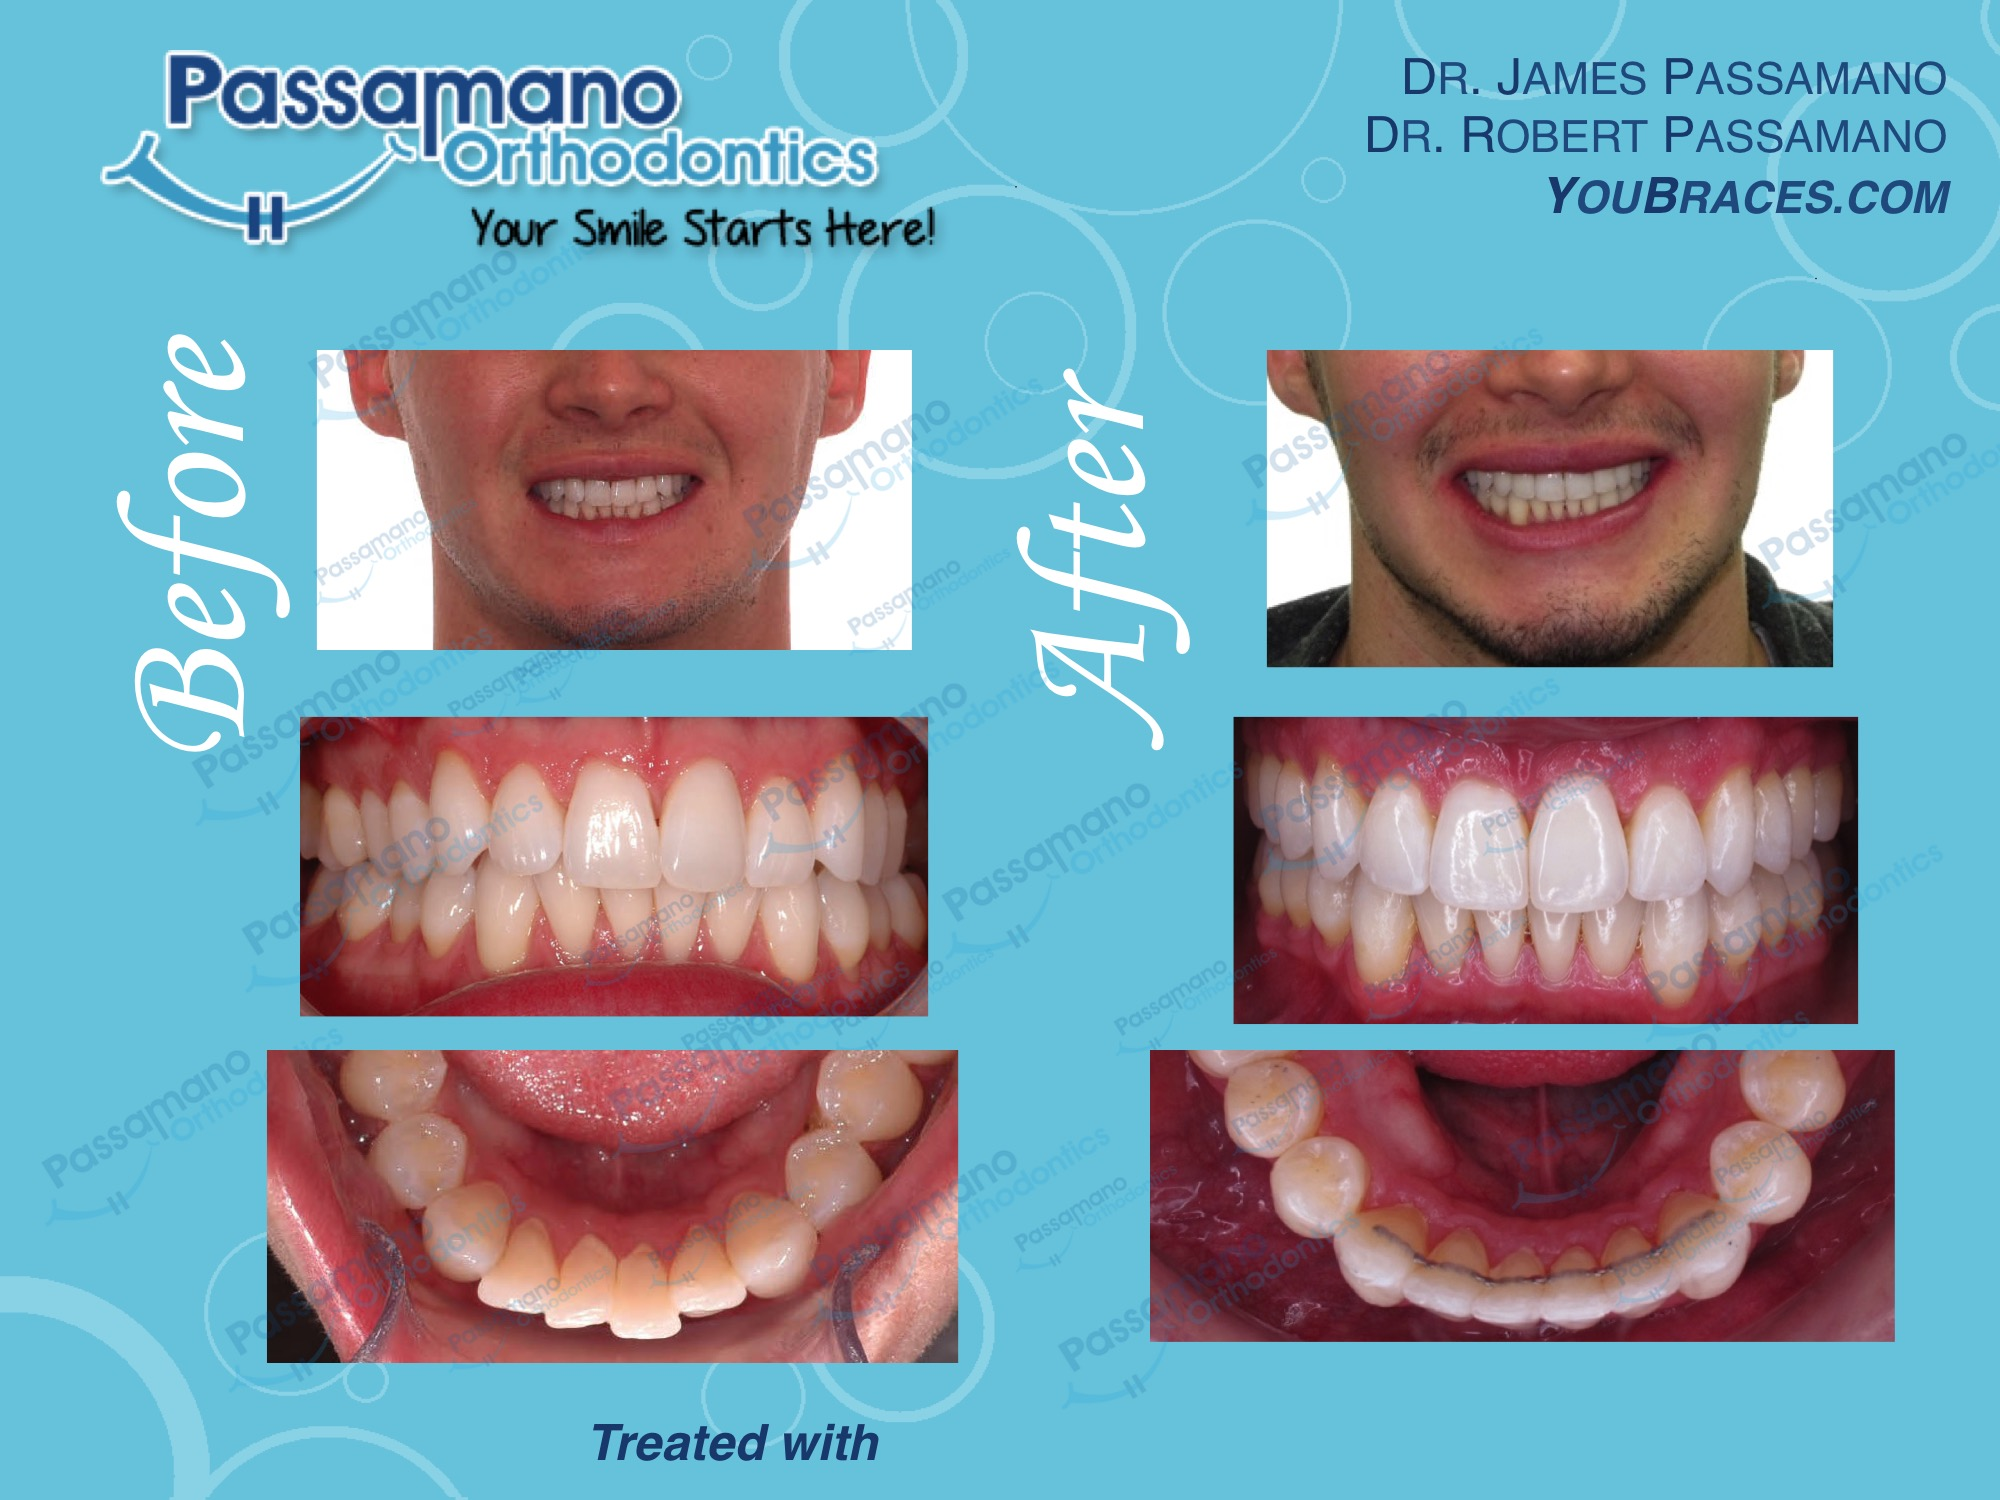 Minor Crowding with Invisalign in 12 Months!